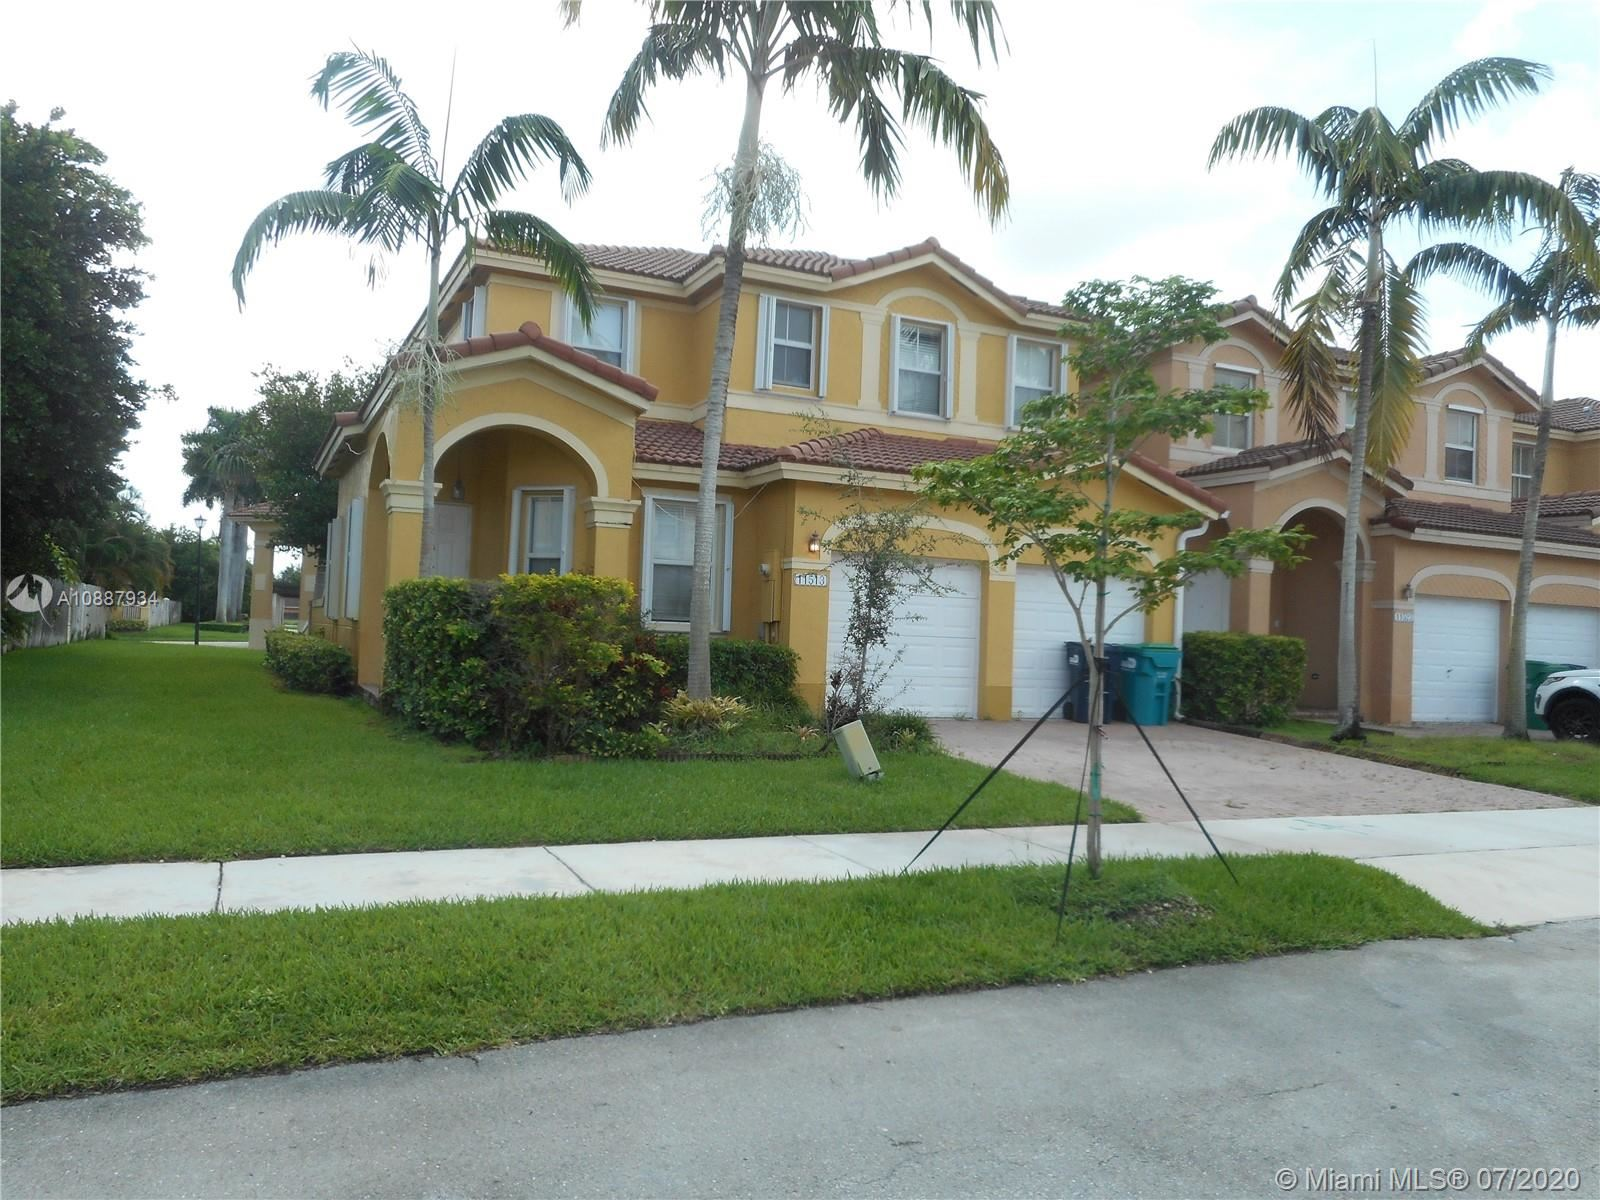 11513 SW 137th Psge #-, Miami, FL 33186 - #: A10887934